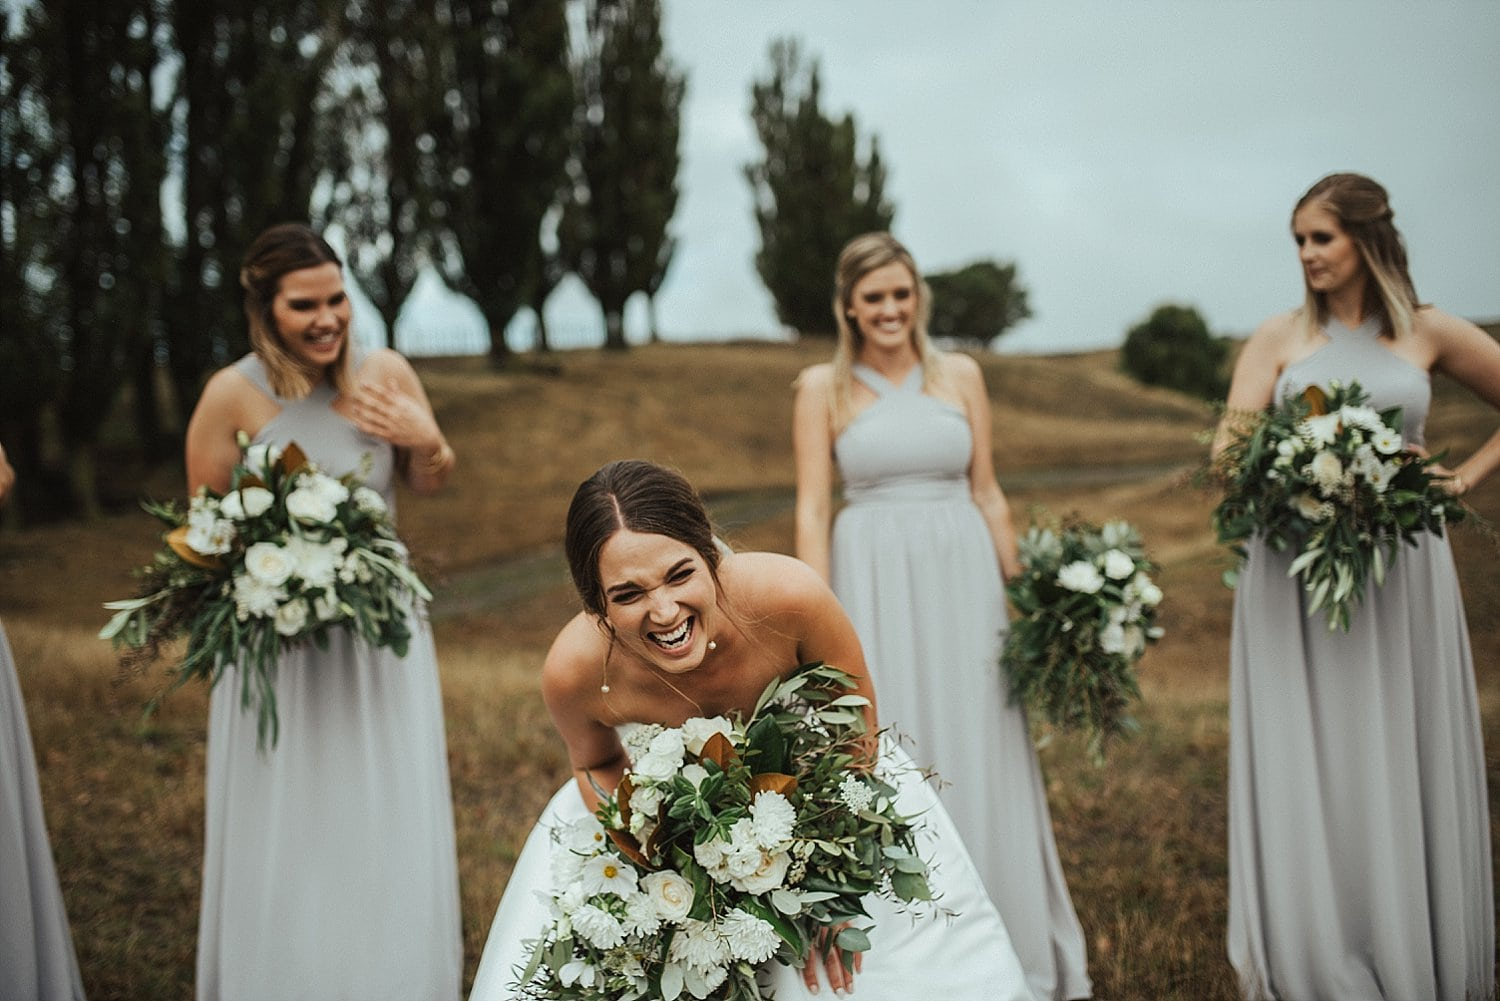 Kate & Grae - Cape Estate, Hawke's Bay | www.meredithlord.com